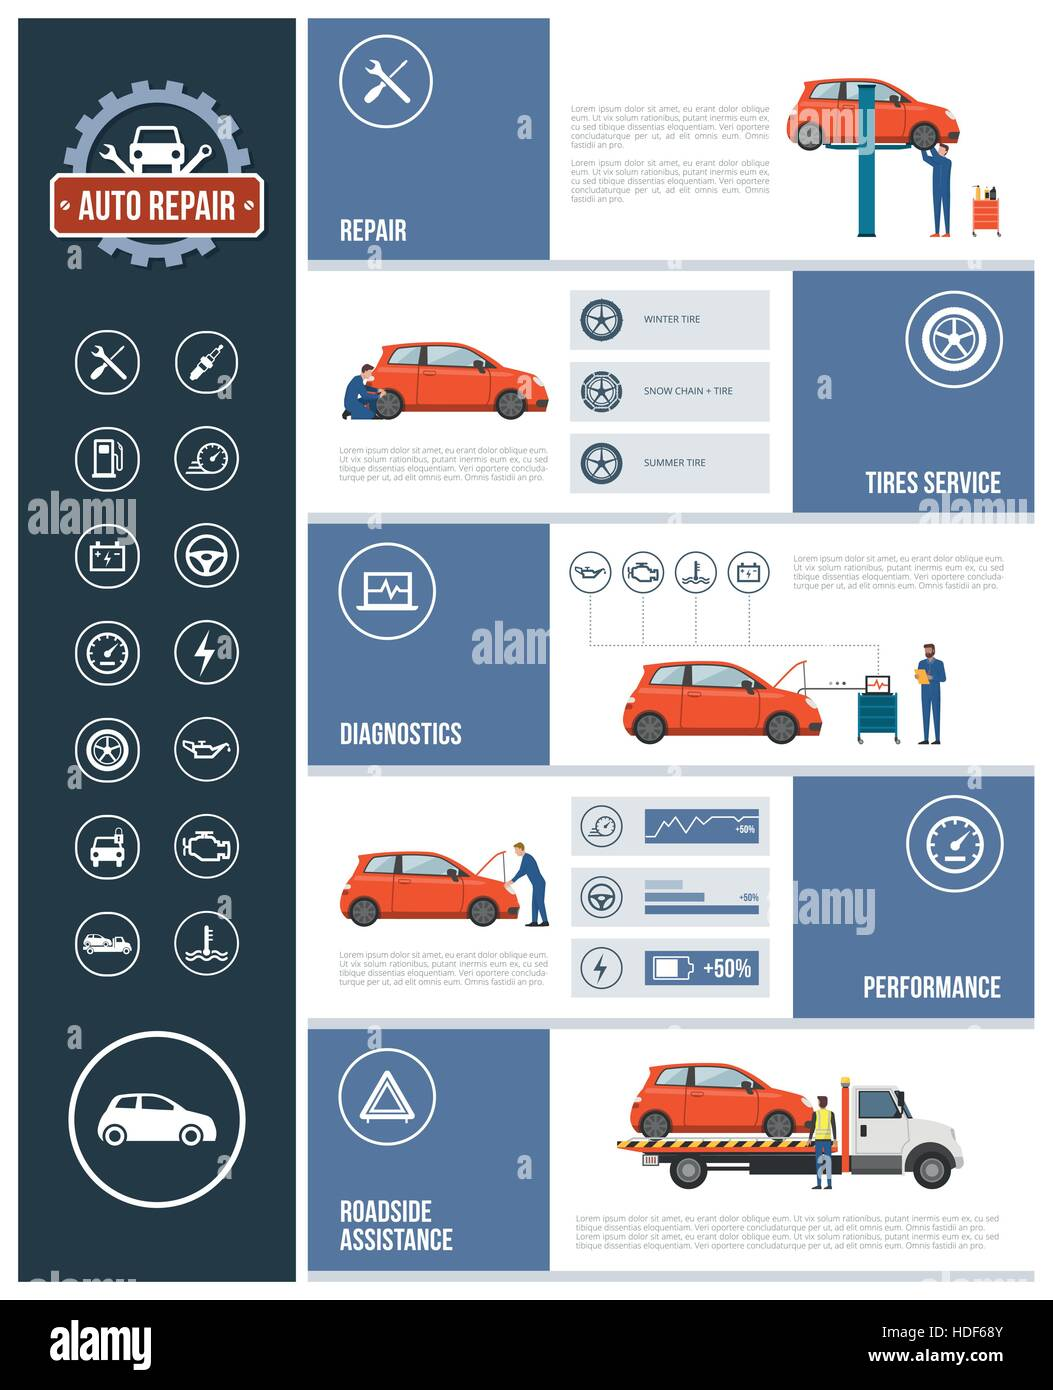 Auto Repair Service Infographic With Mechanics Working On